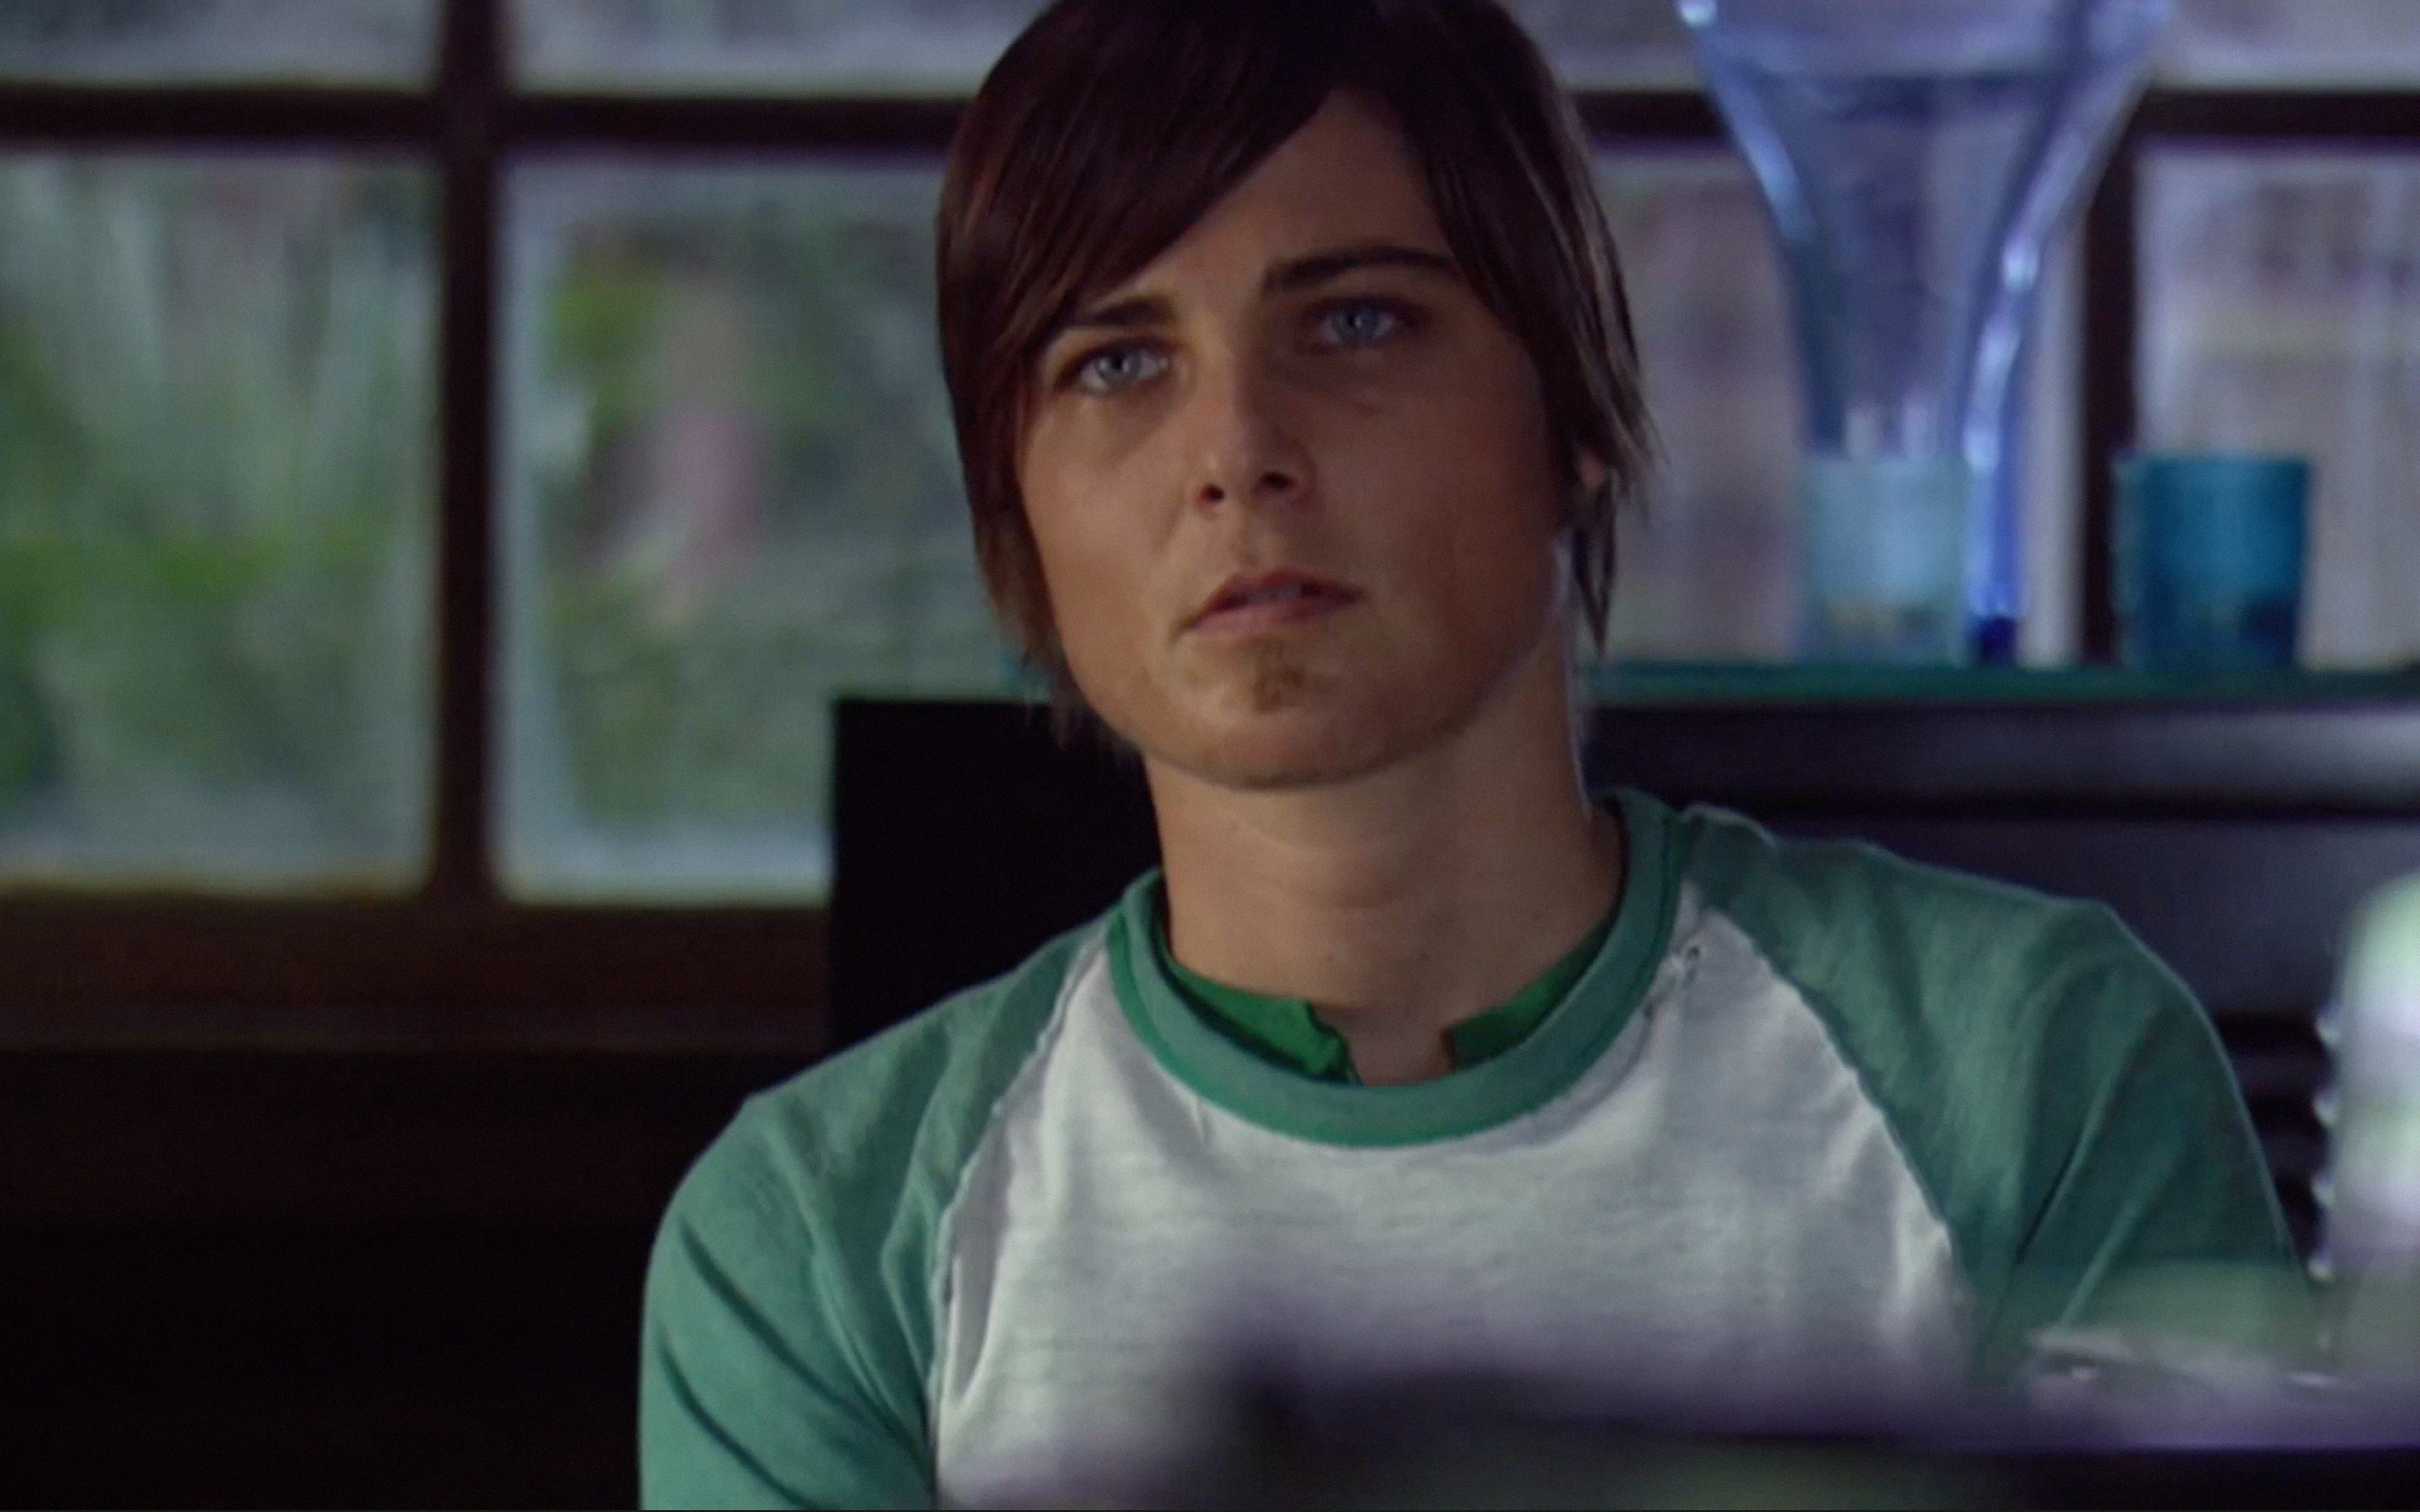 A photo of Max from The L Word, a white person with brown hair and blue eyes. Max looks into the camera.